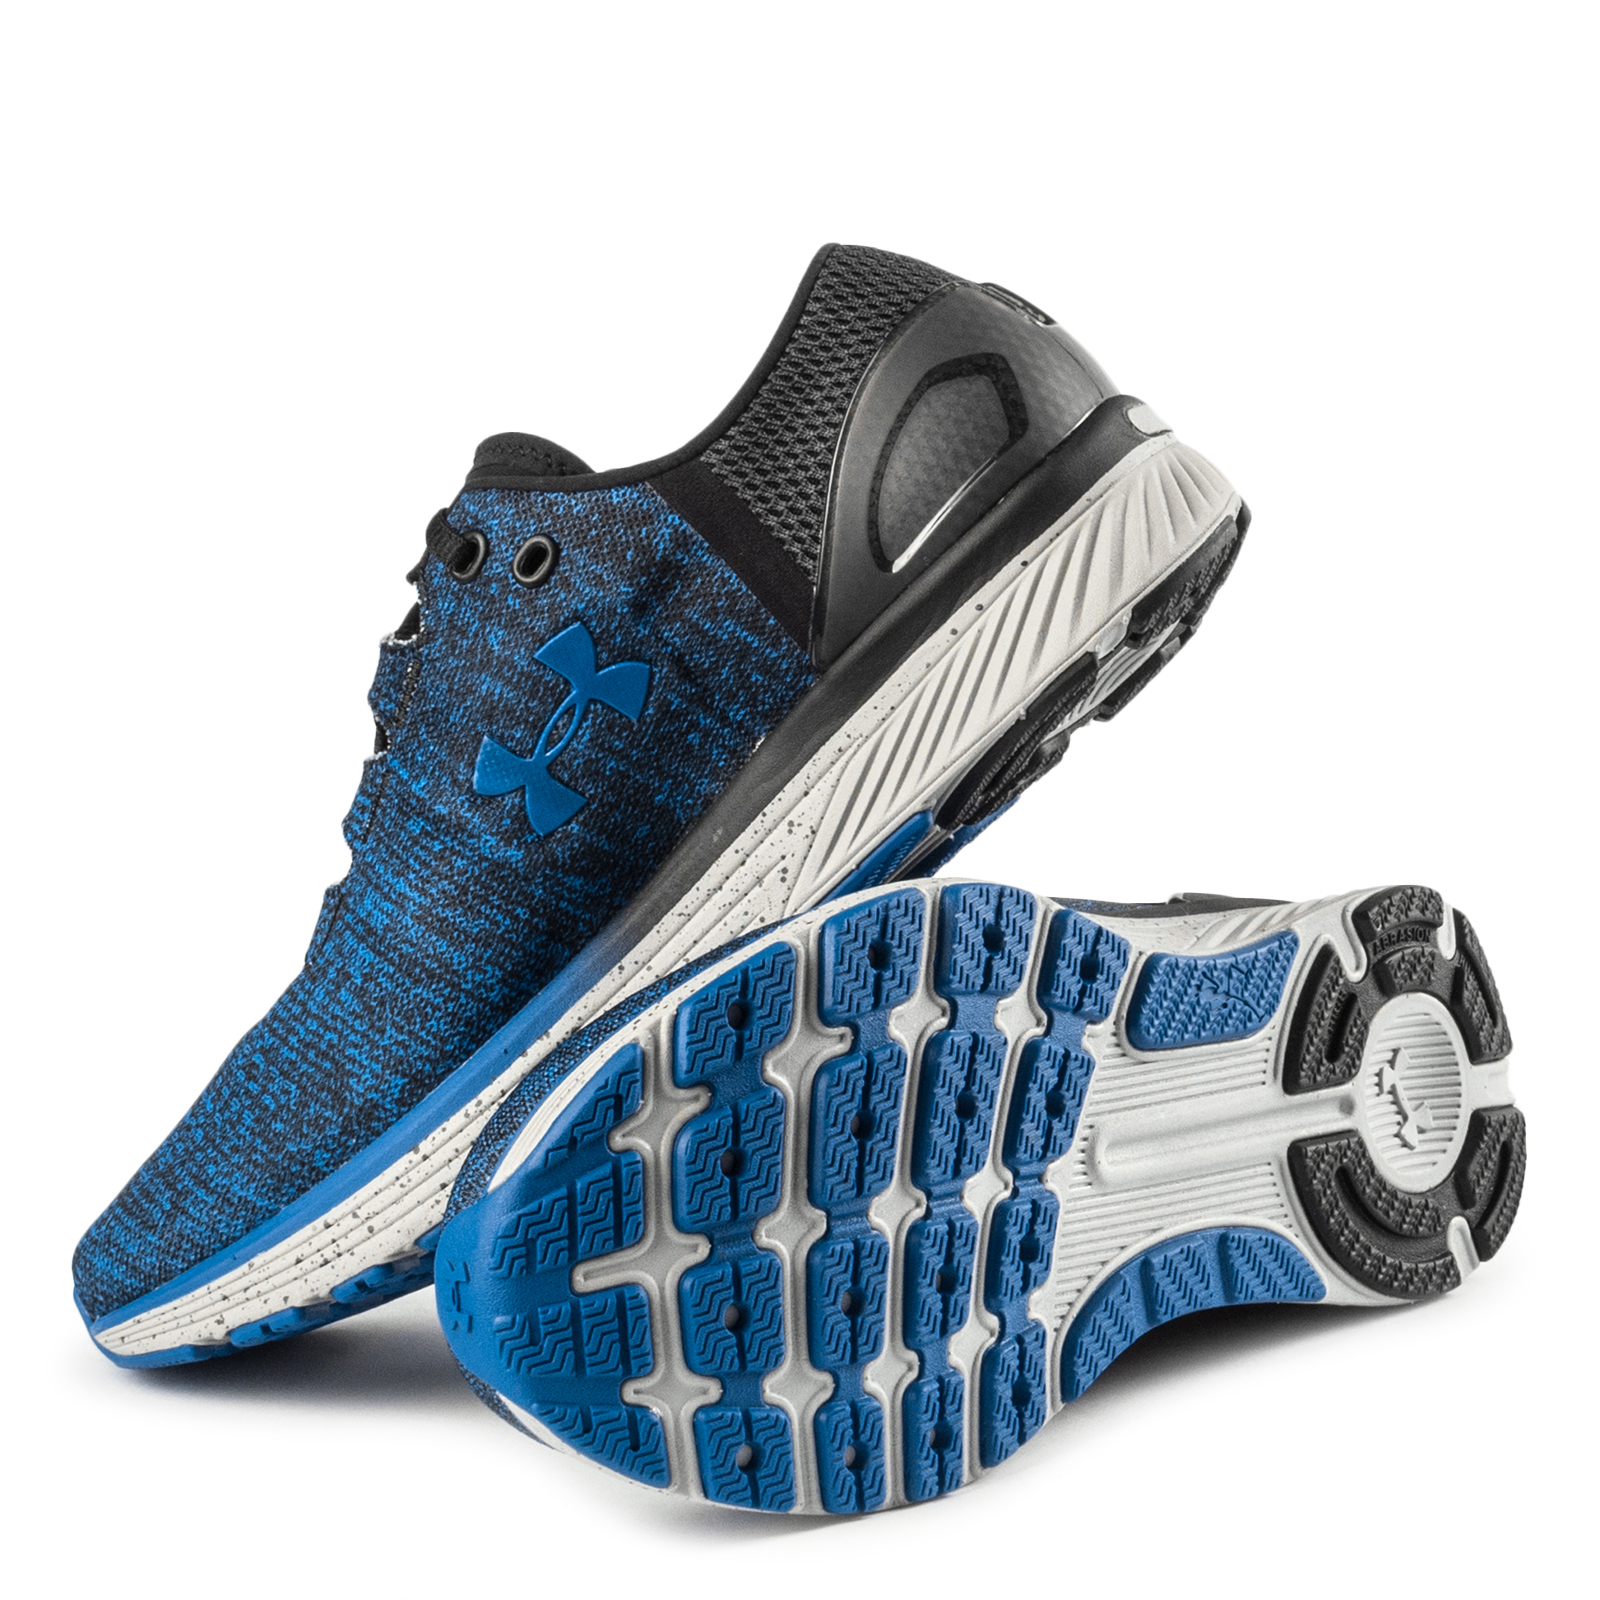 Under Armour running shoes 1295725-907